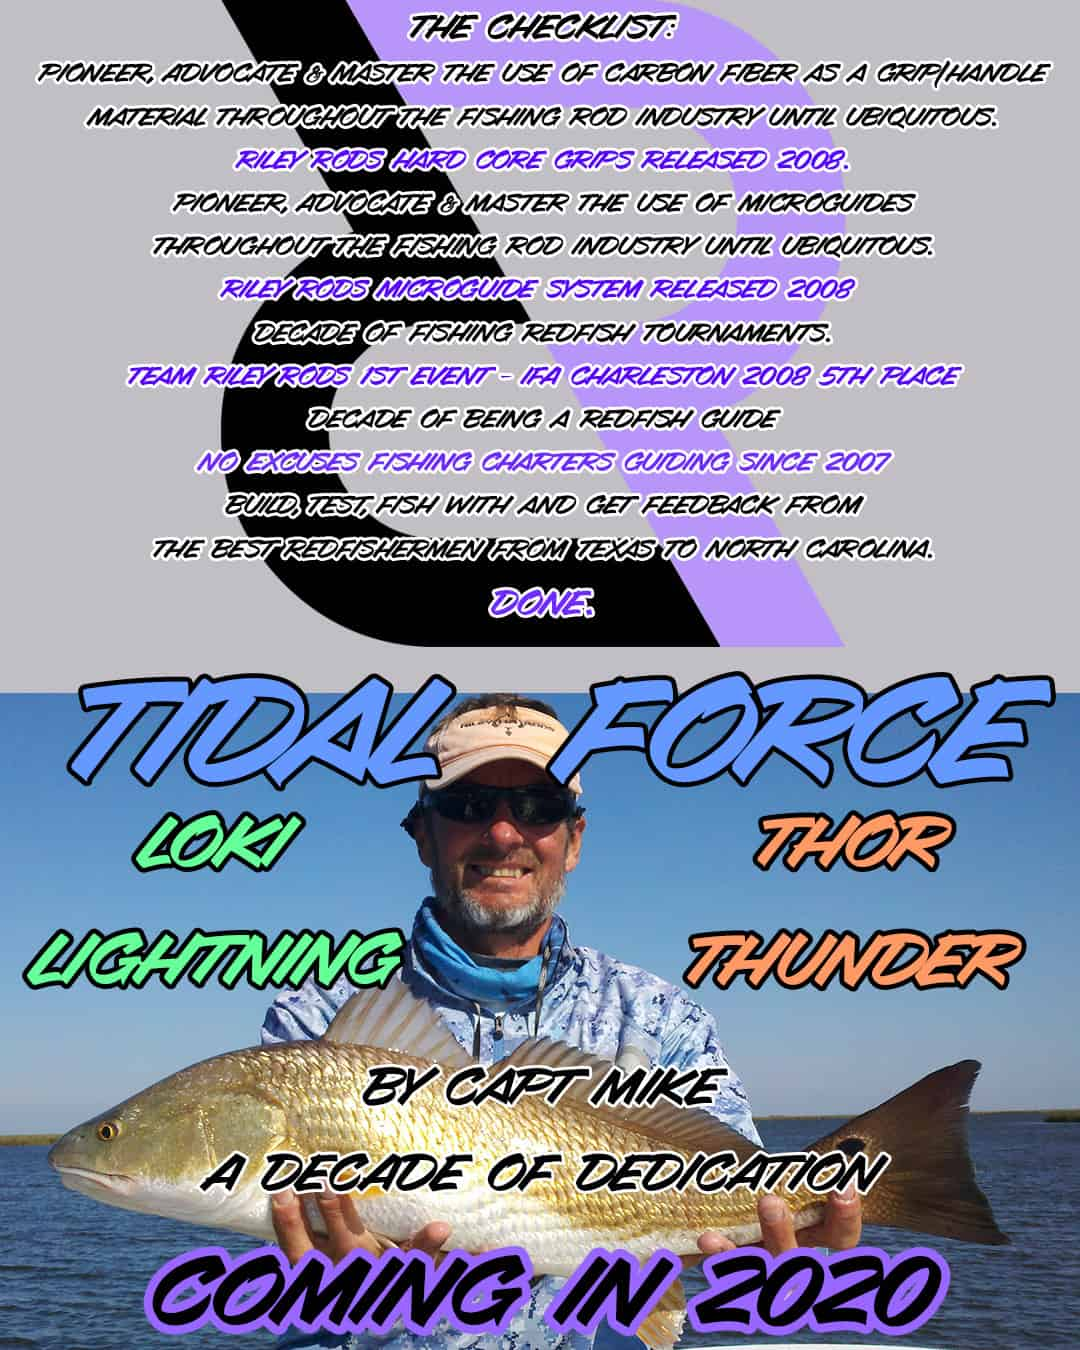 Capt Mike Fishing - NX Fishing Charters - Riley Rods - Team North Fork Composites 18